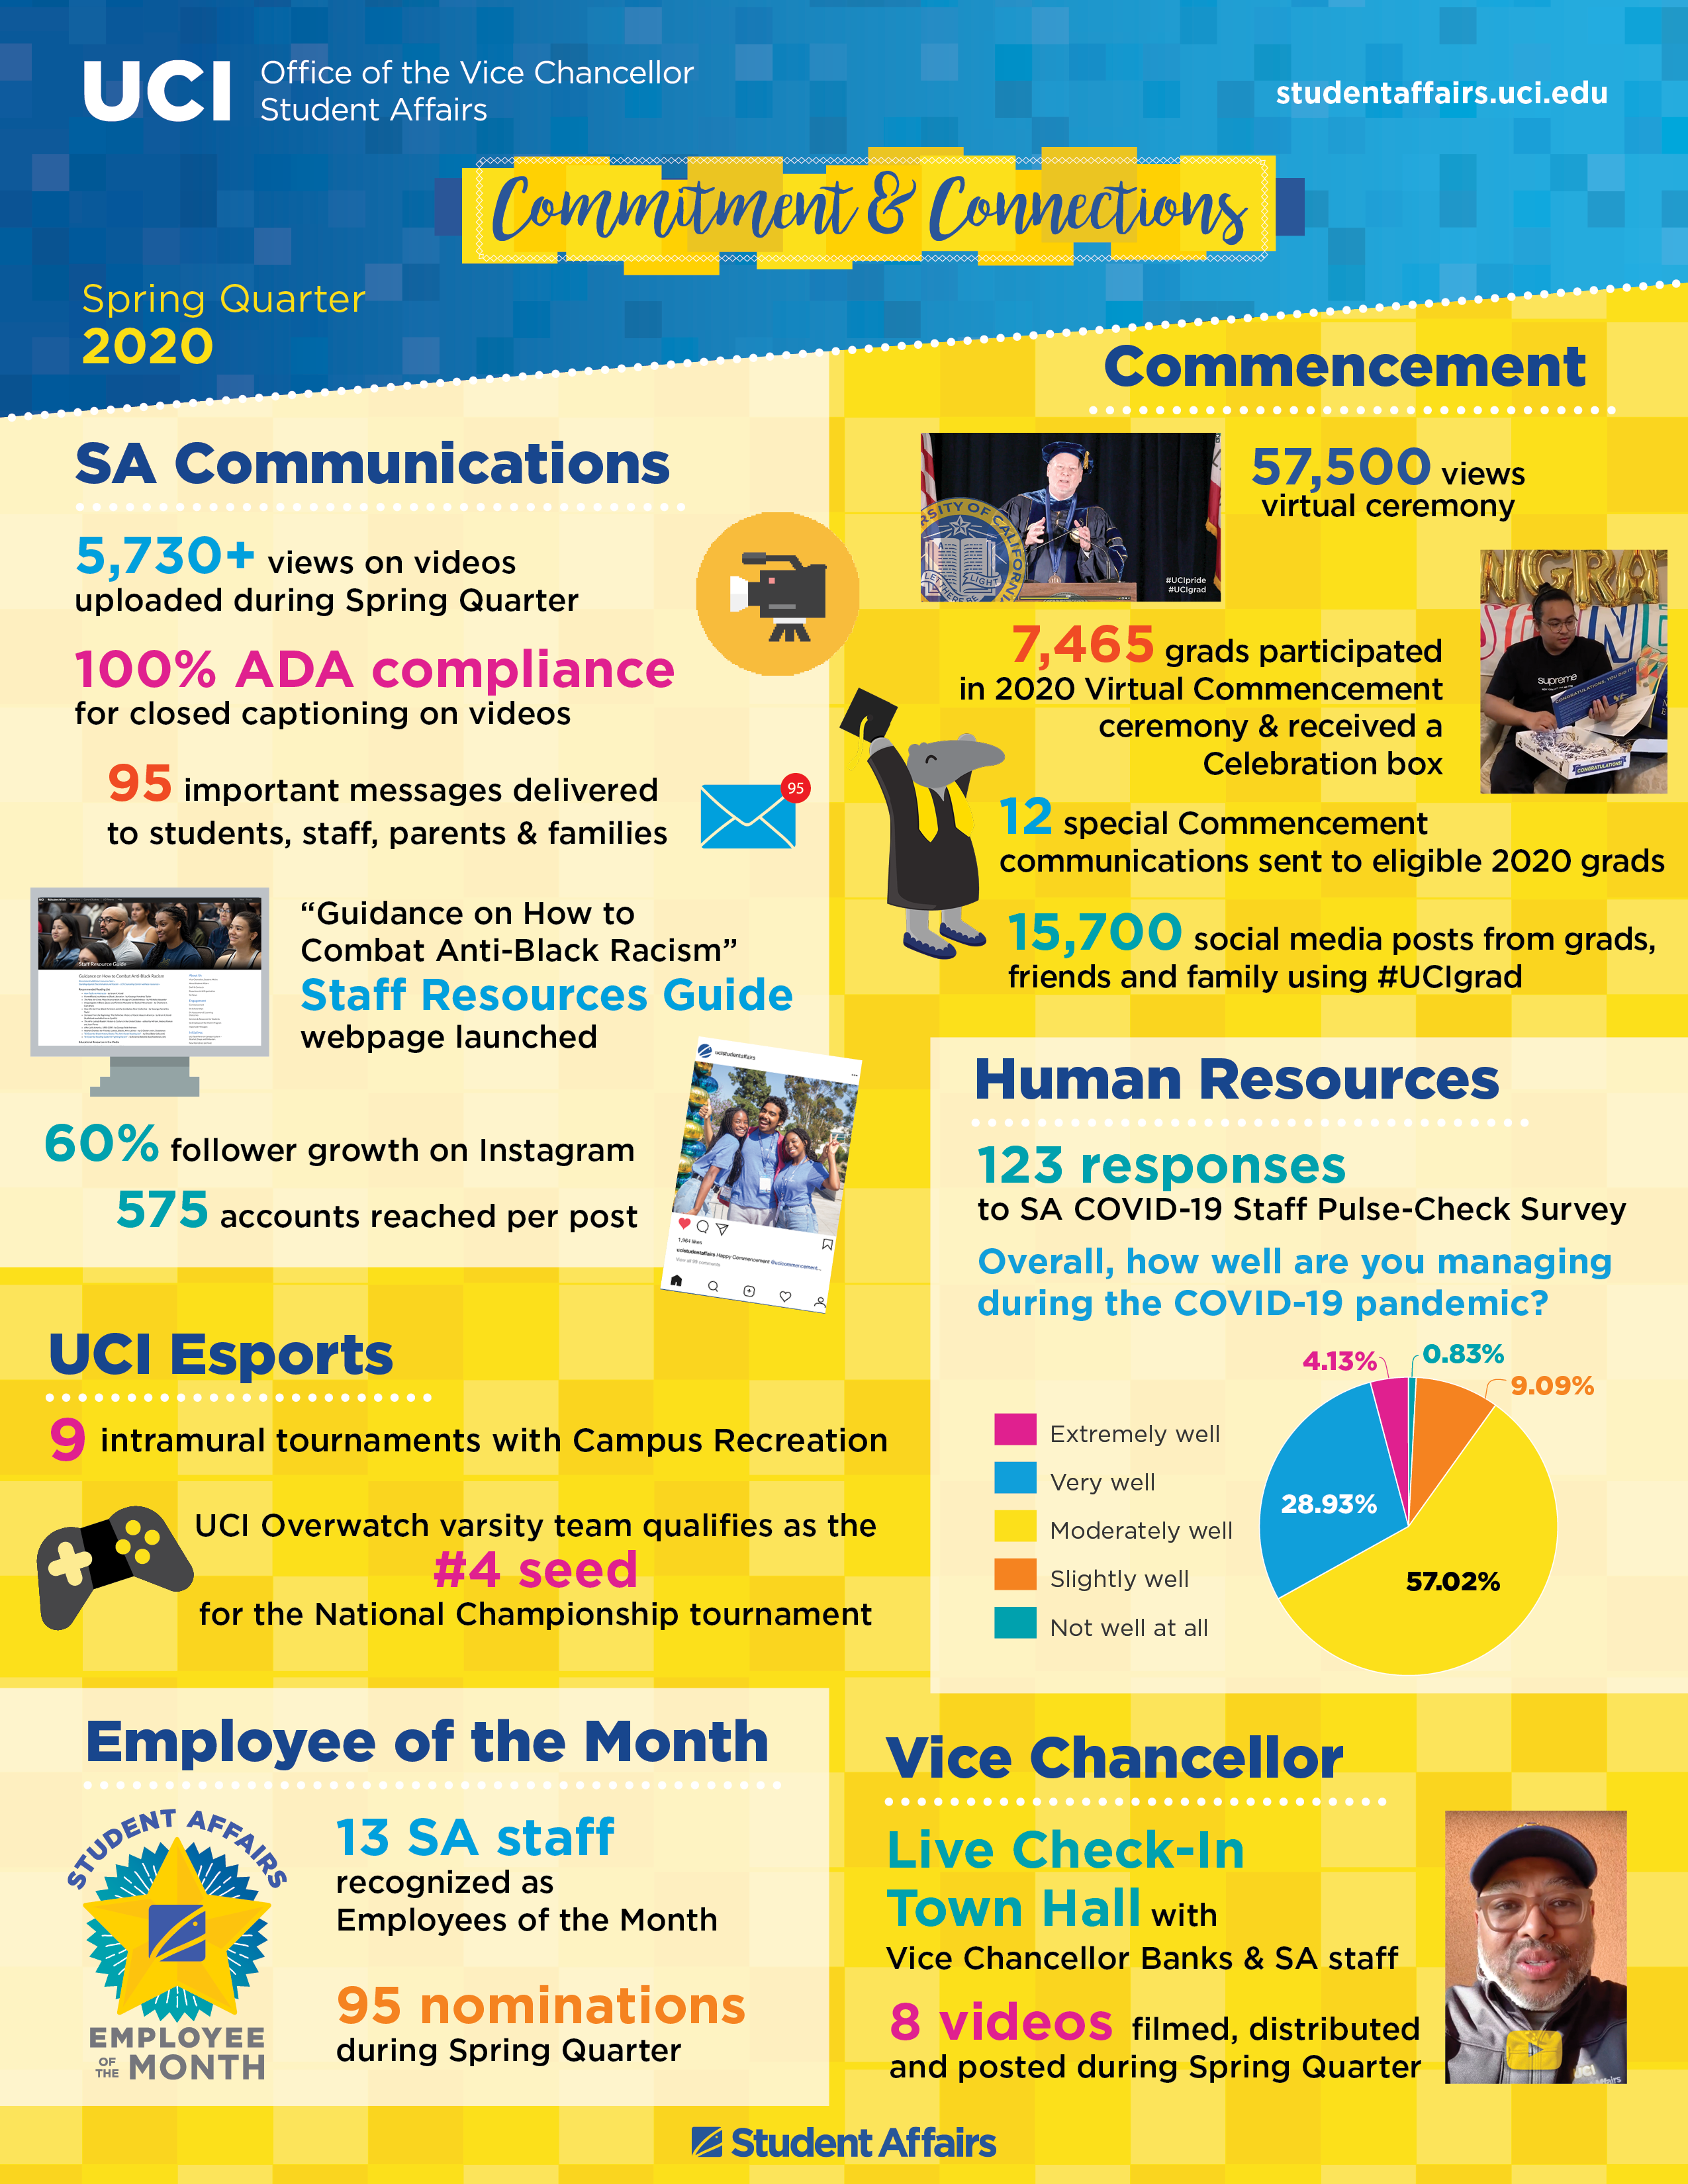 Office of the Vice Chancellor, Student Affairs Spring Quarter 2020 infographic